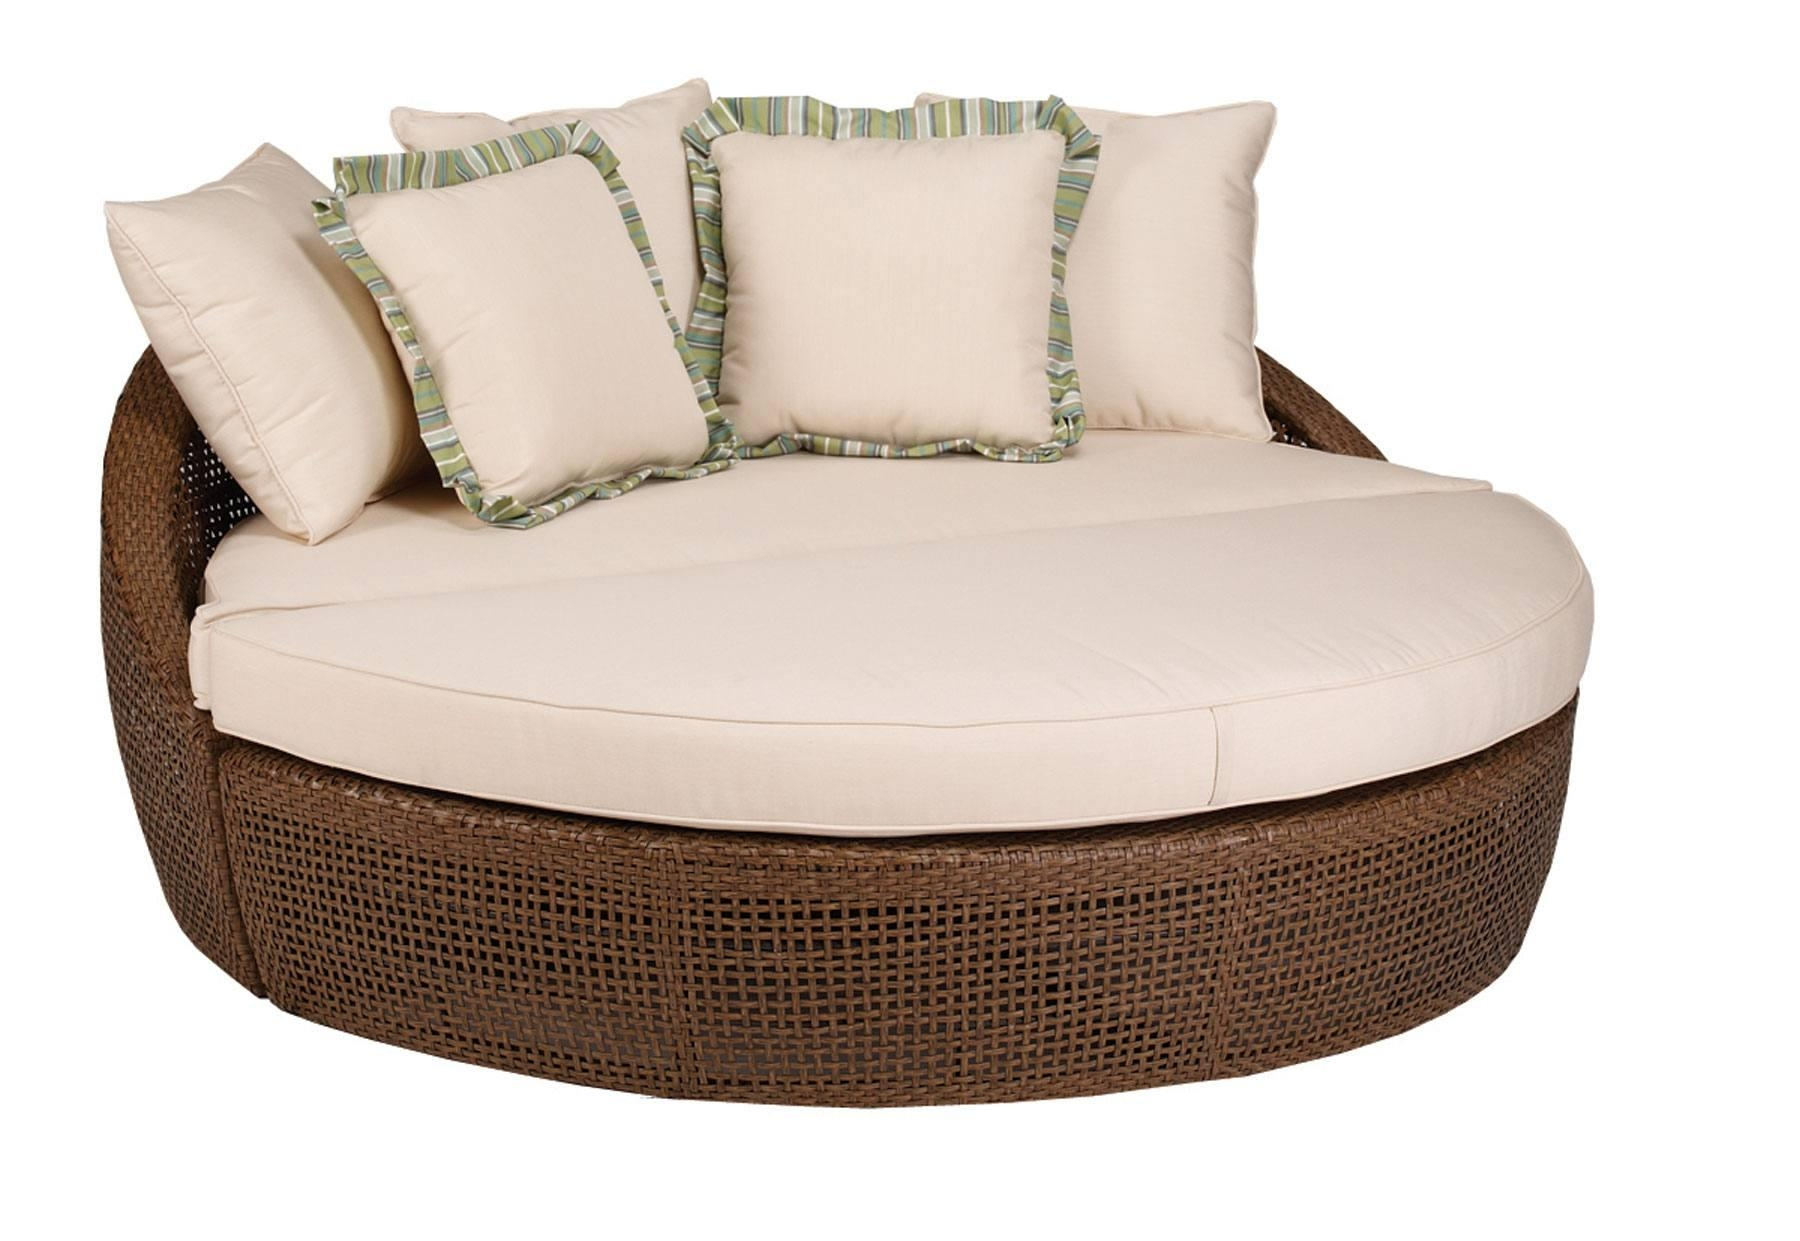 Lounge Chair Furniture Chaise Chairs And Inspiration Decorating Pertaining To Lounge Sofas And Chairs (Image 11 of 20)